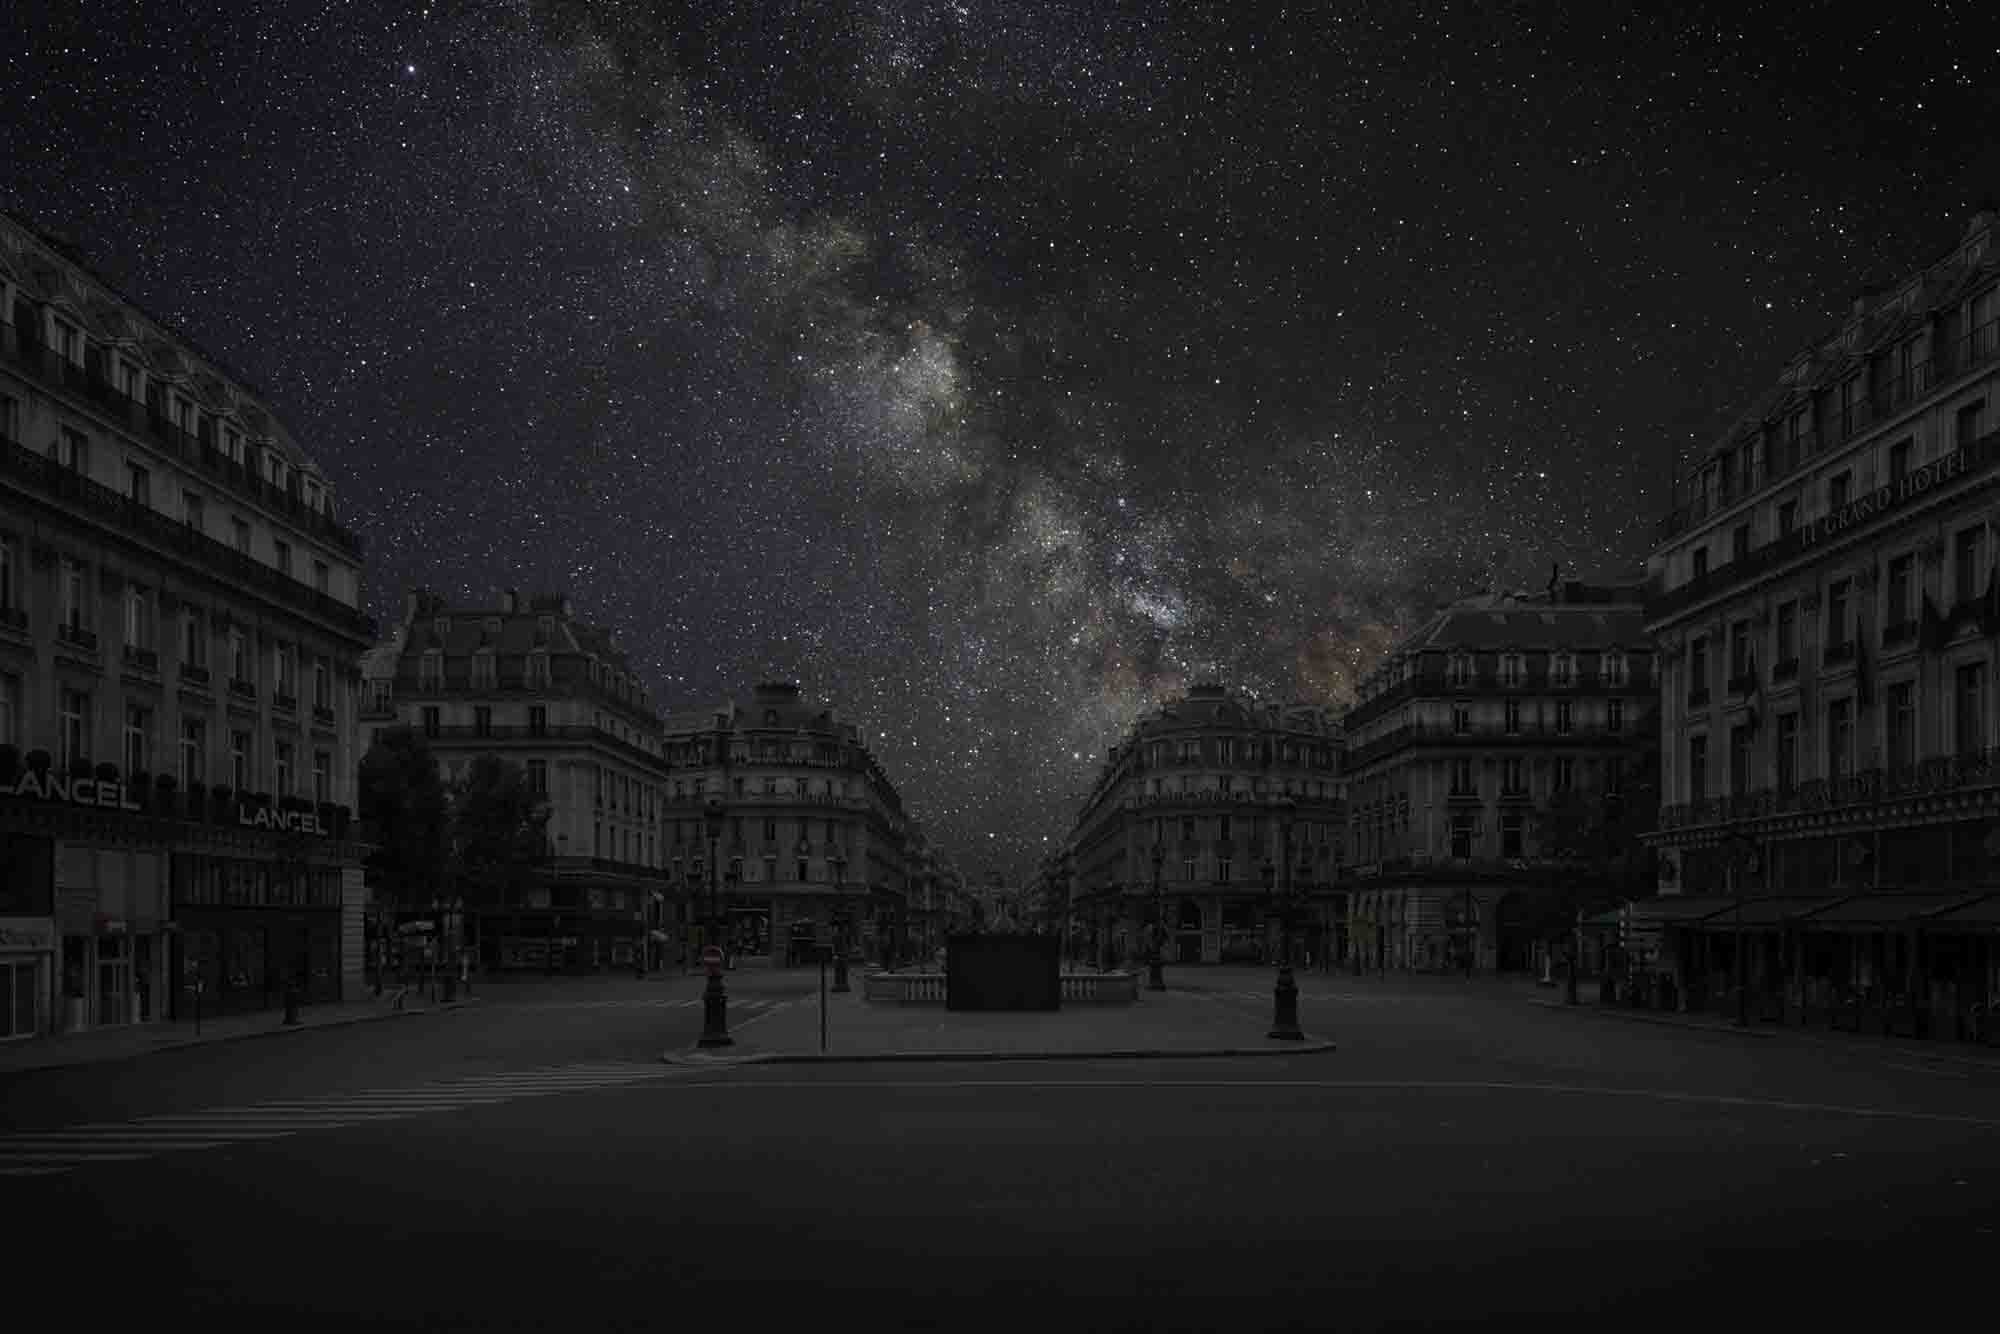 PARIS 48° 52' 16'' N  2012-06-17  LST 17:30<br/>Darkened Cities - Villes éteintes